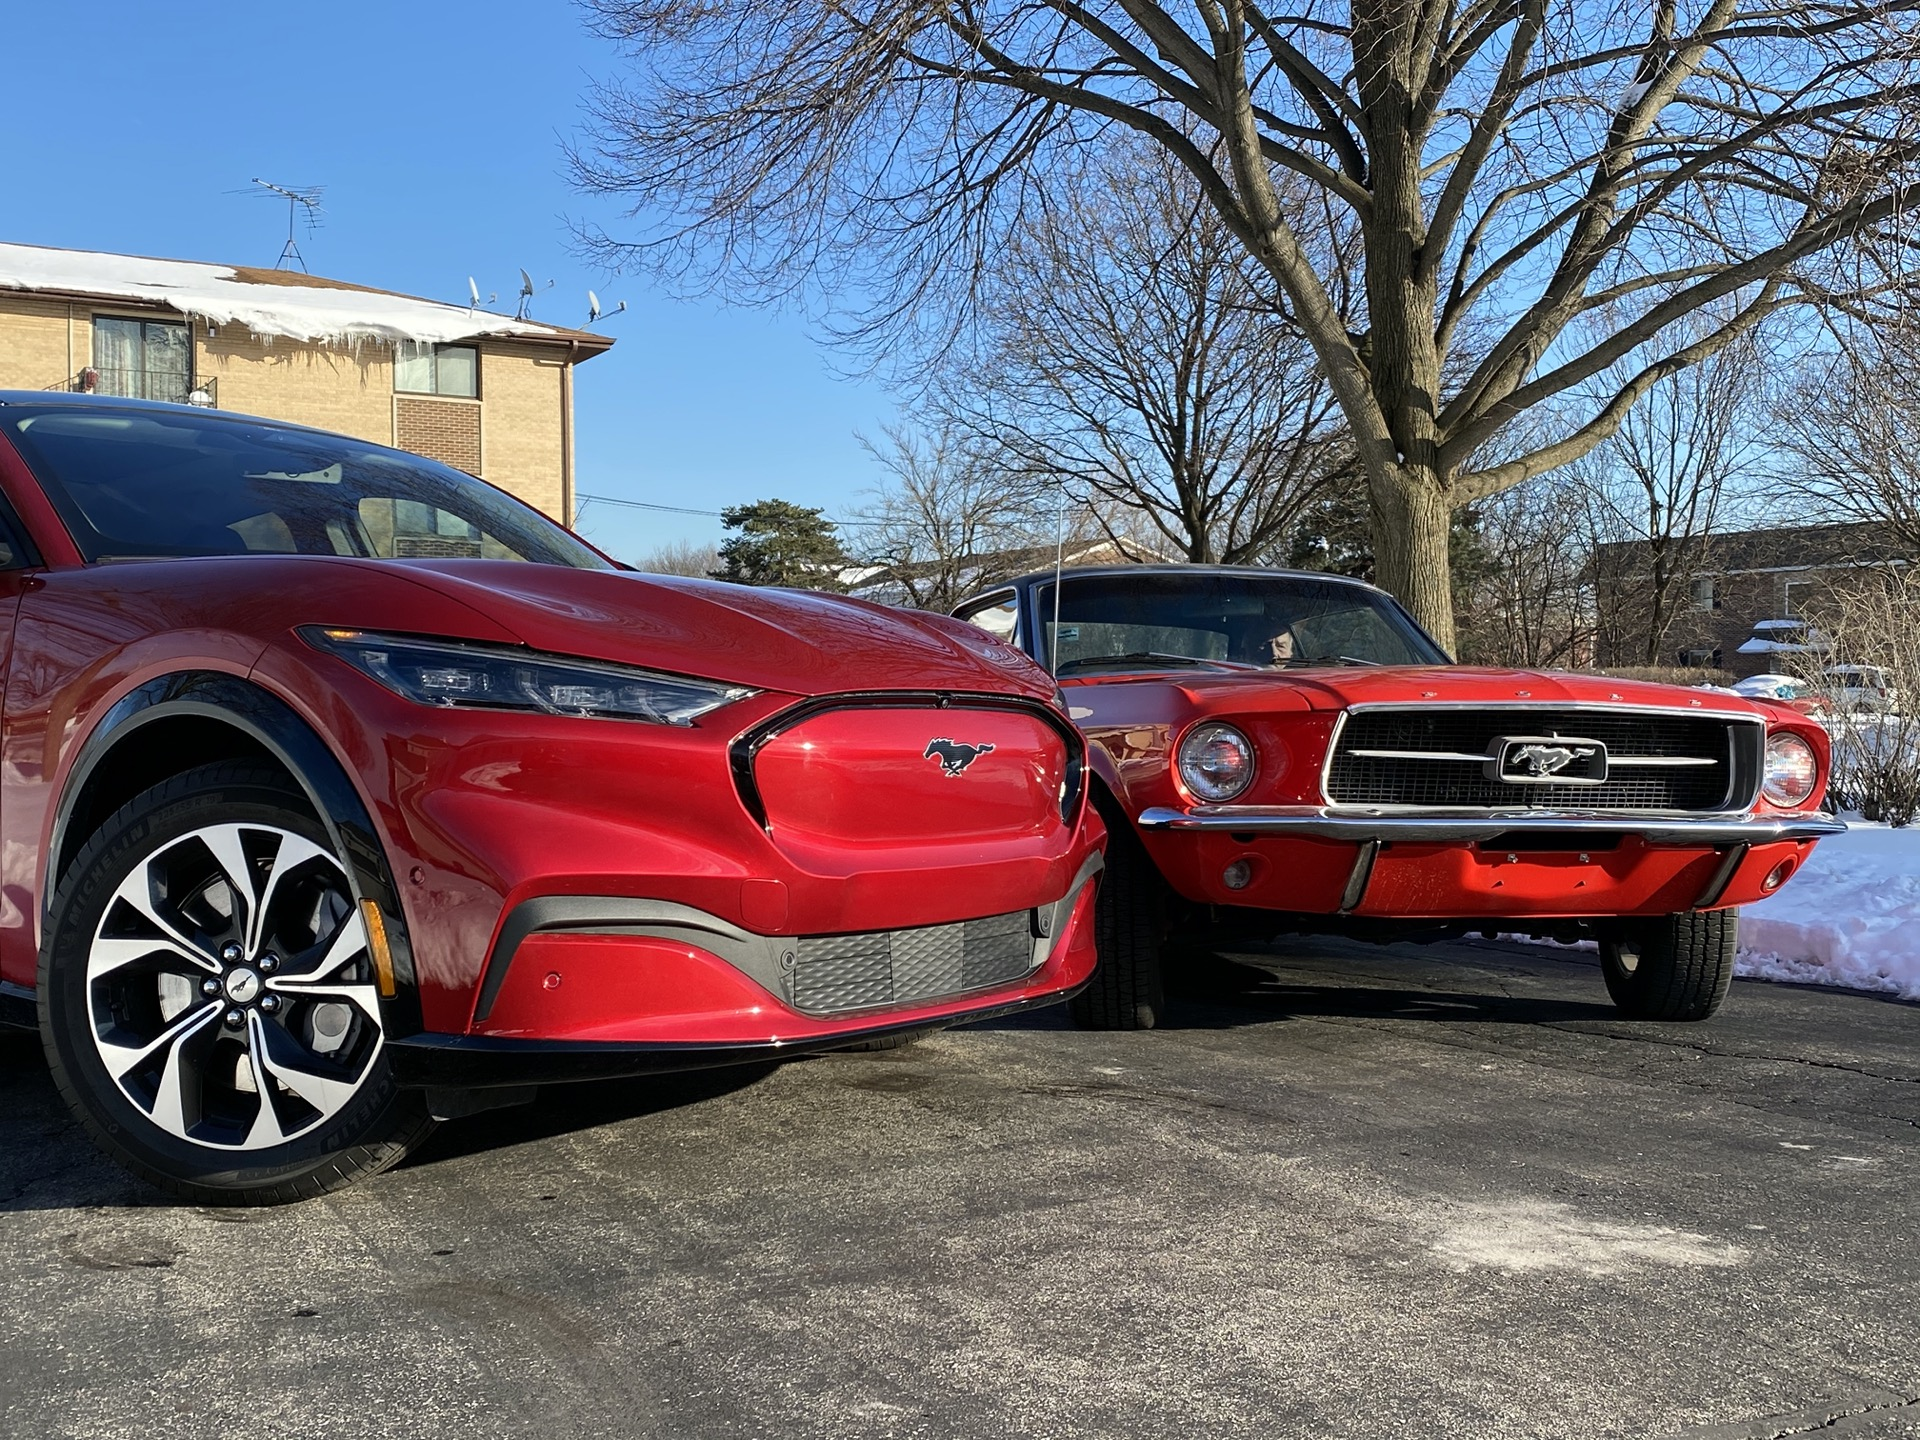 Mustang Mach-E vs. '67 Mustang, Porsche vies with Ferrari, Chevy Bolt EV range report: What's New @ The Car Connection